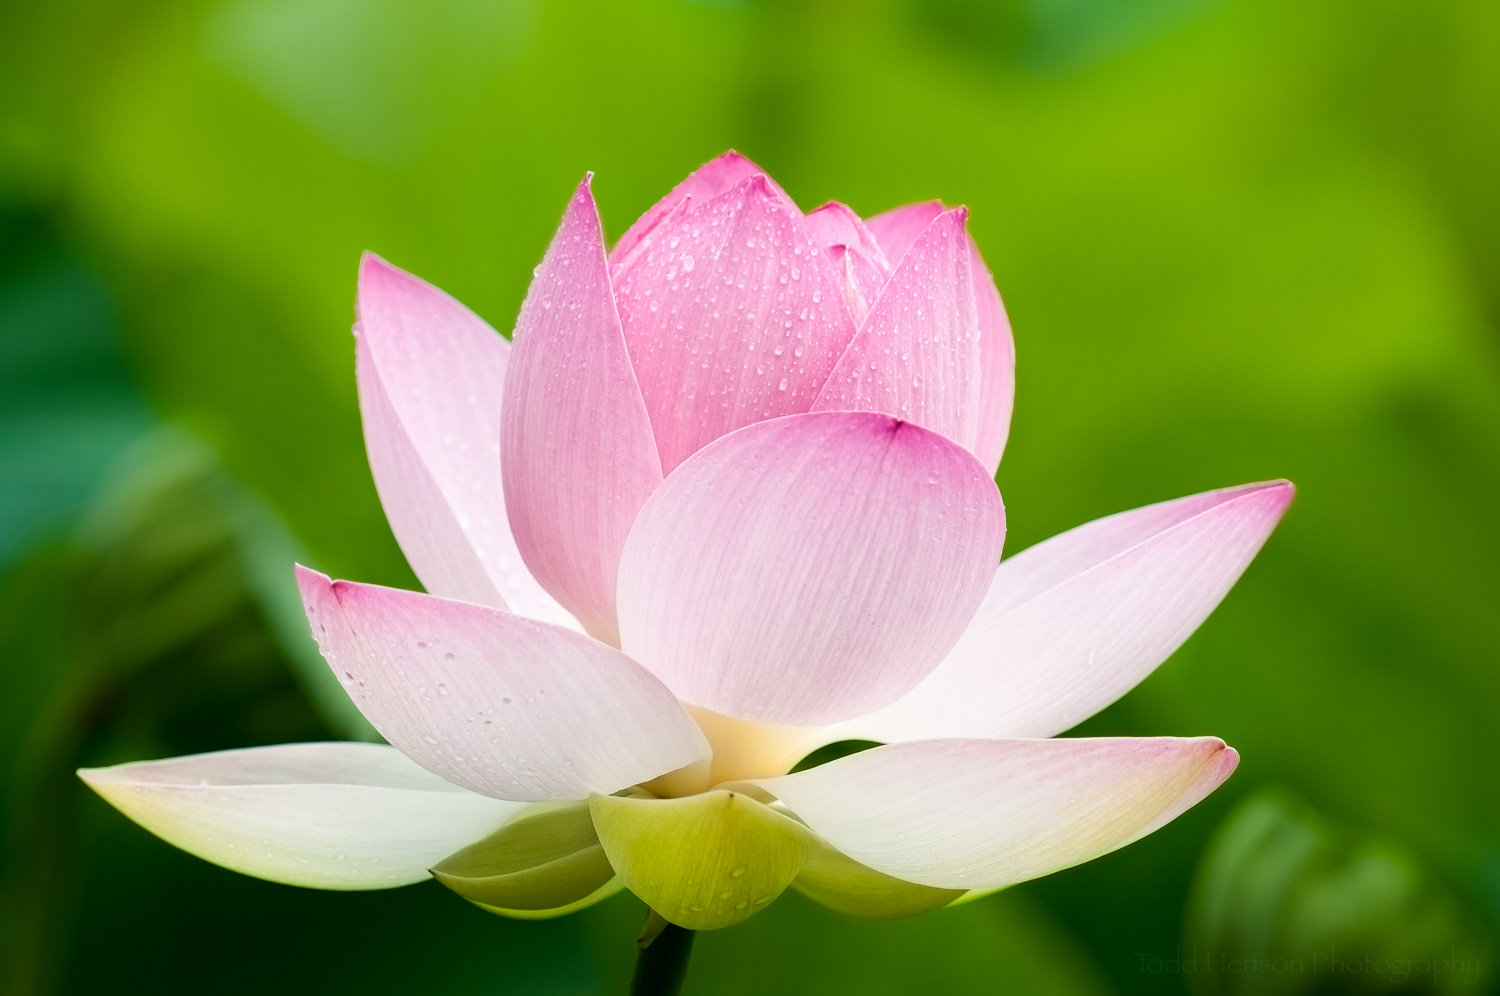 Opening lotus blossom covered in rain drops